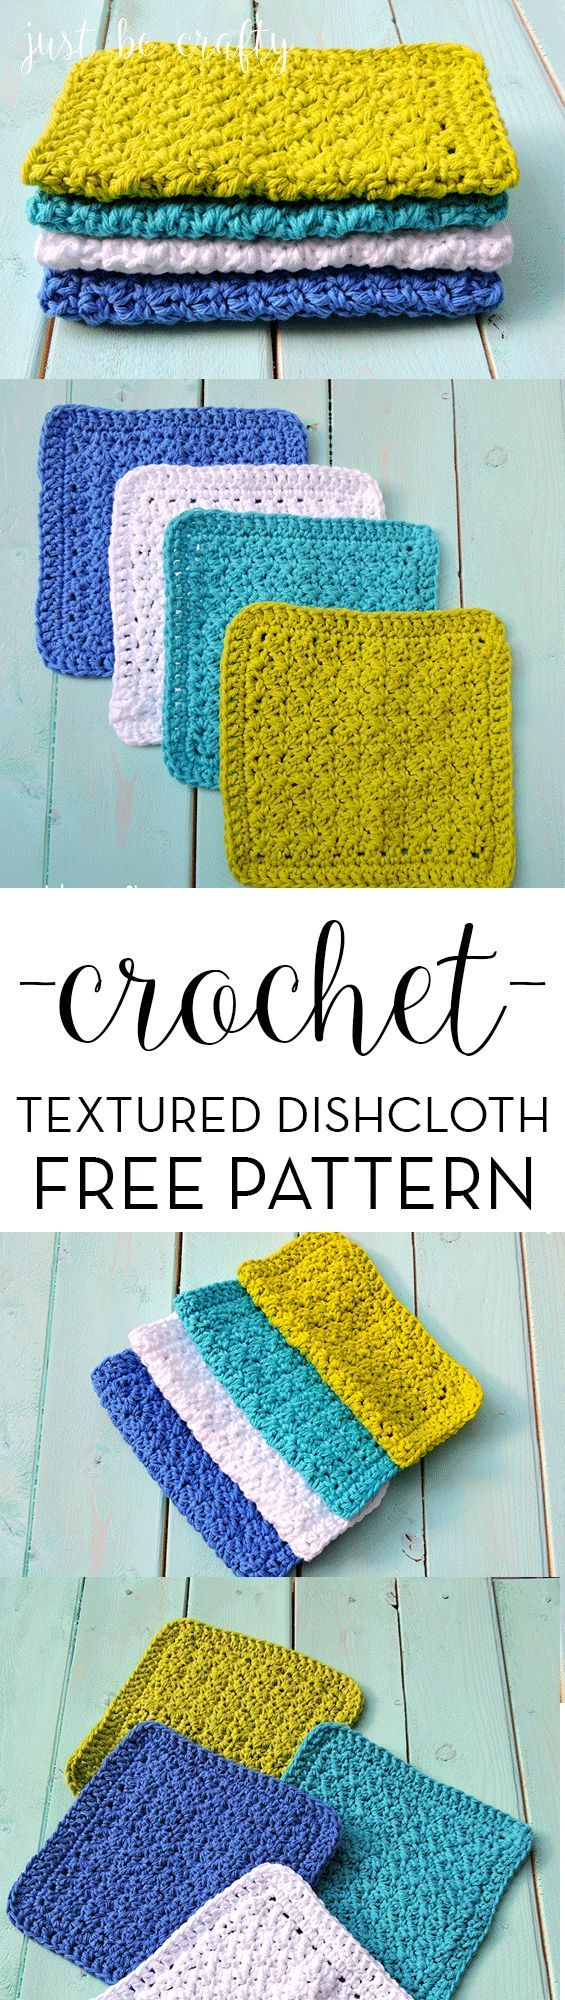 130 best crochet: washcloths, dishrags & towels/ free images on ...